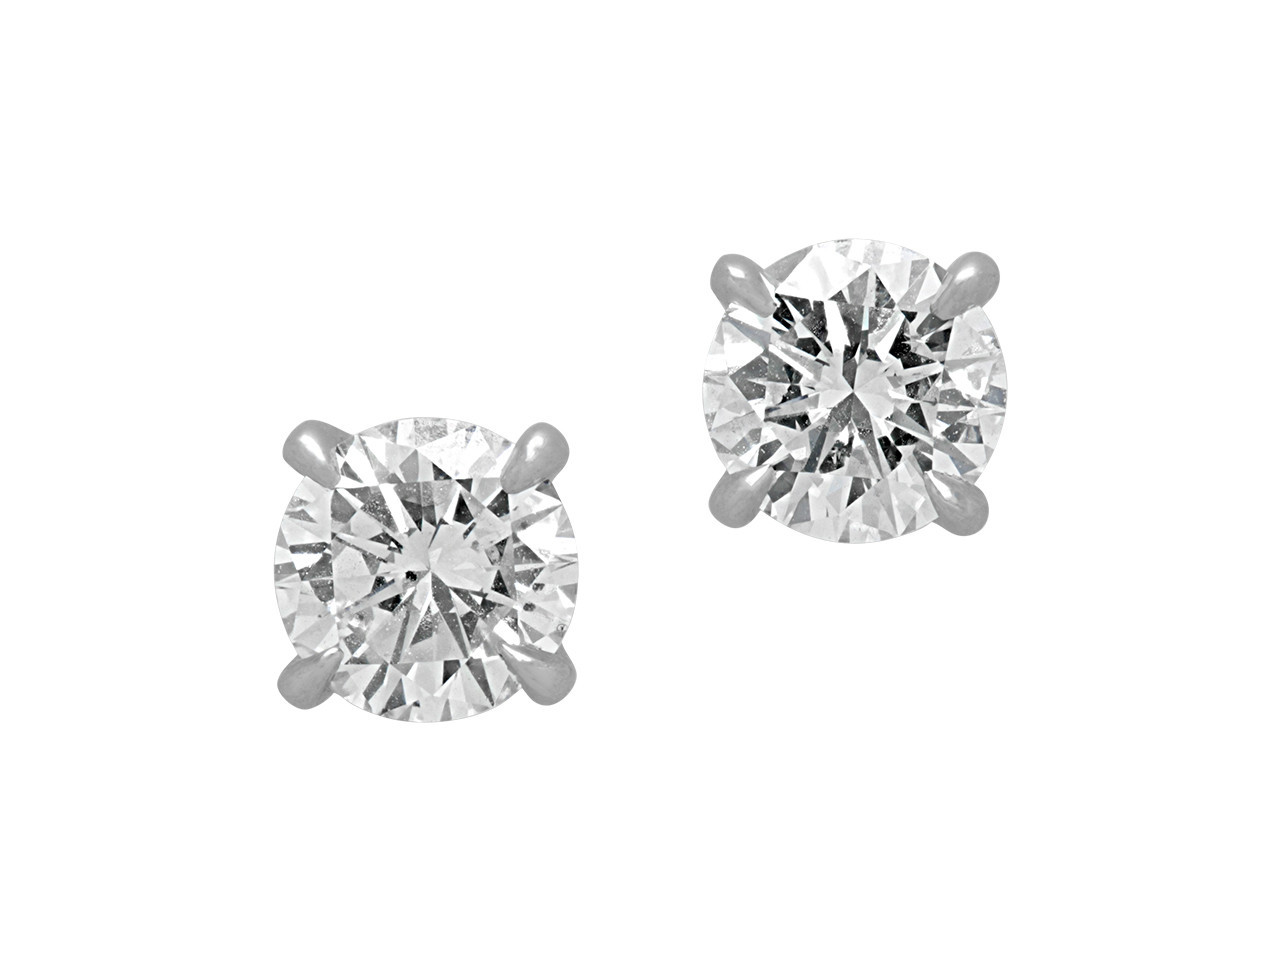 Beladora's Bespoke Diamond Stud Earrings set in platinum.